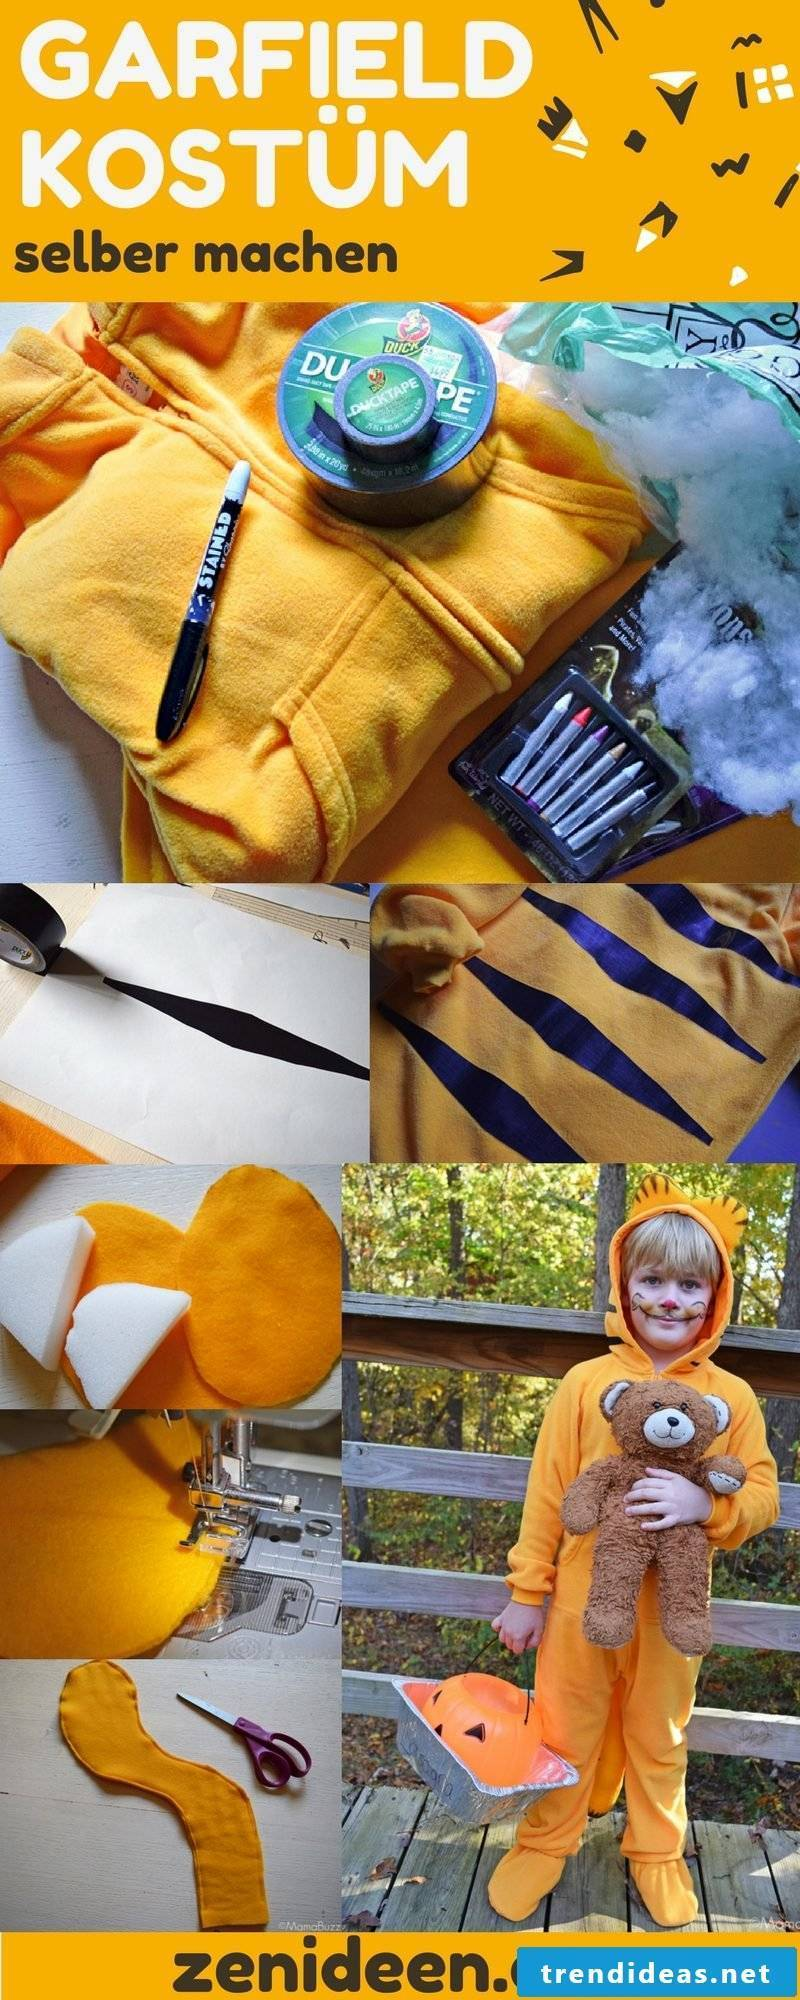 Follow this simple guide for sewing a costume